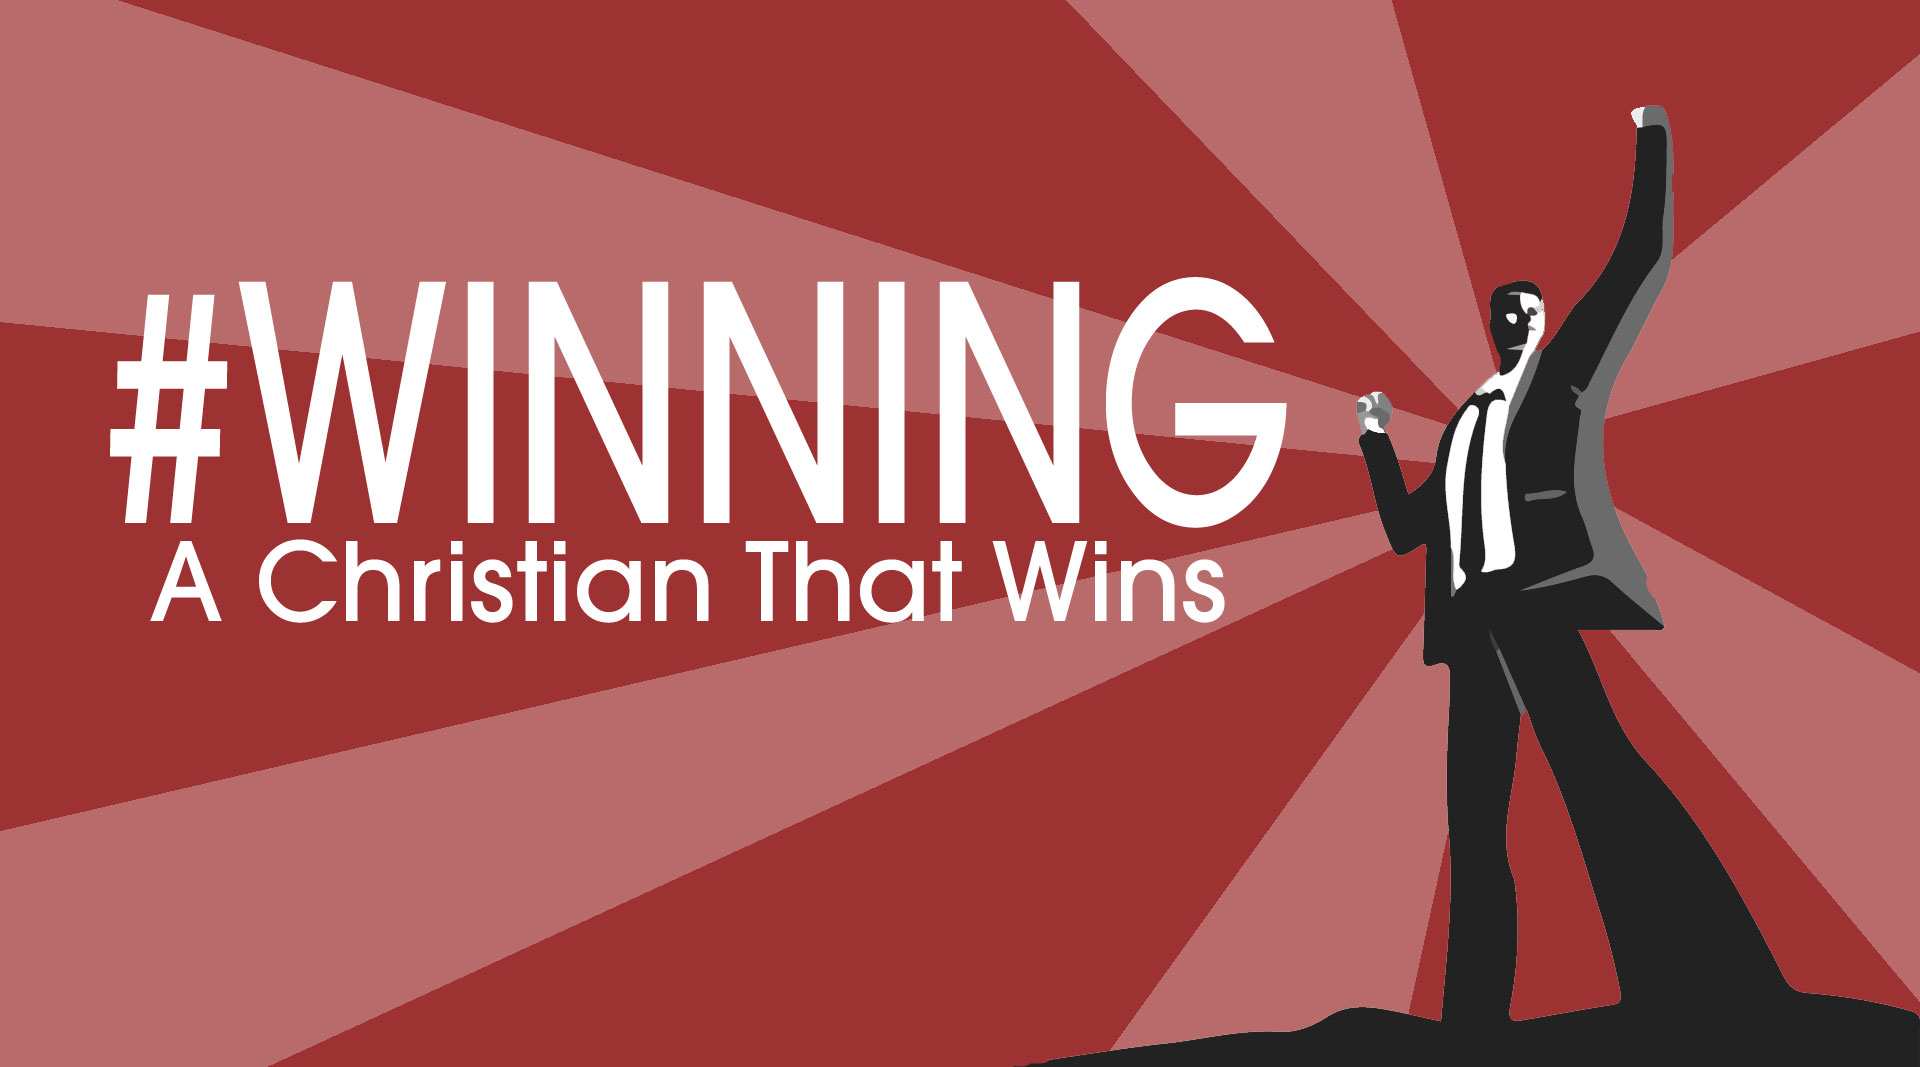 A Christian That Wins Title Image